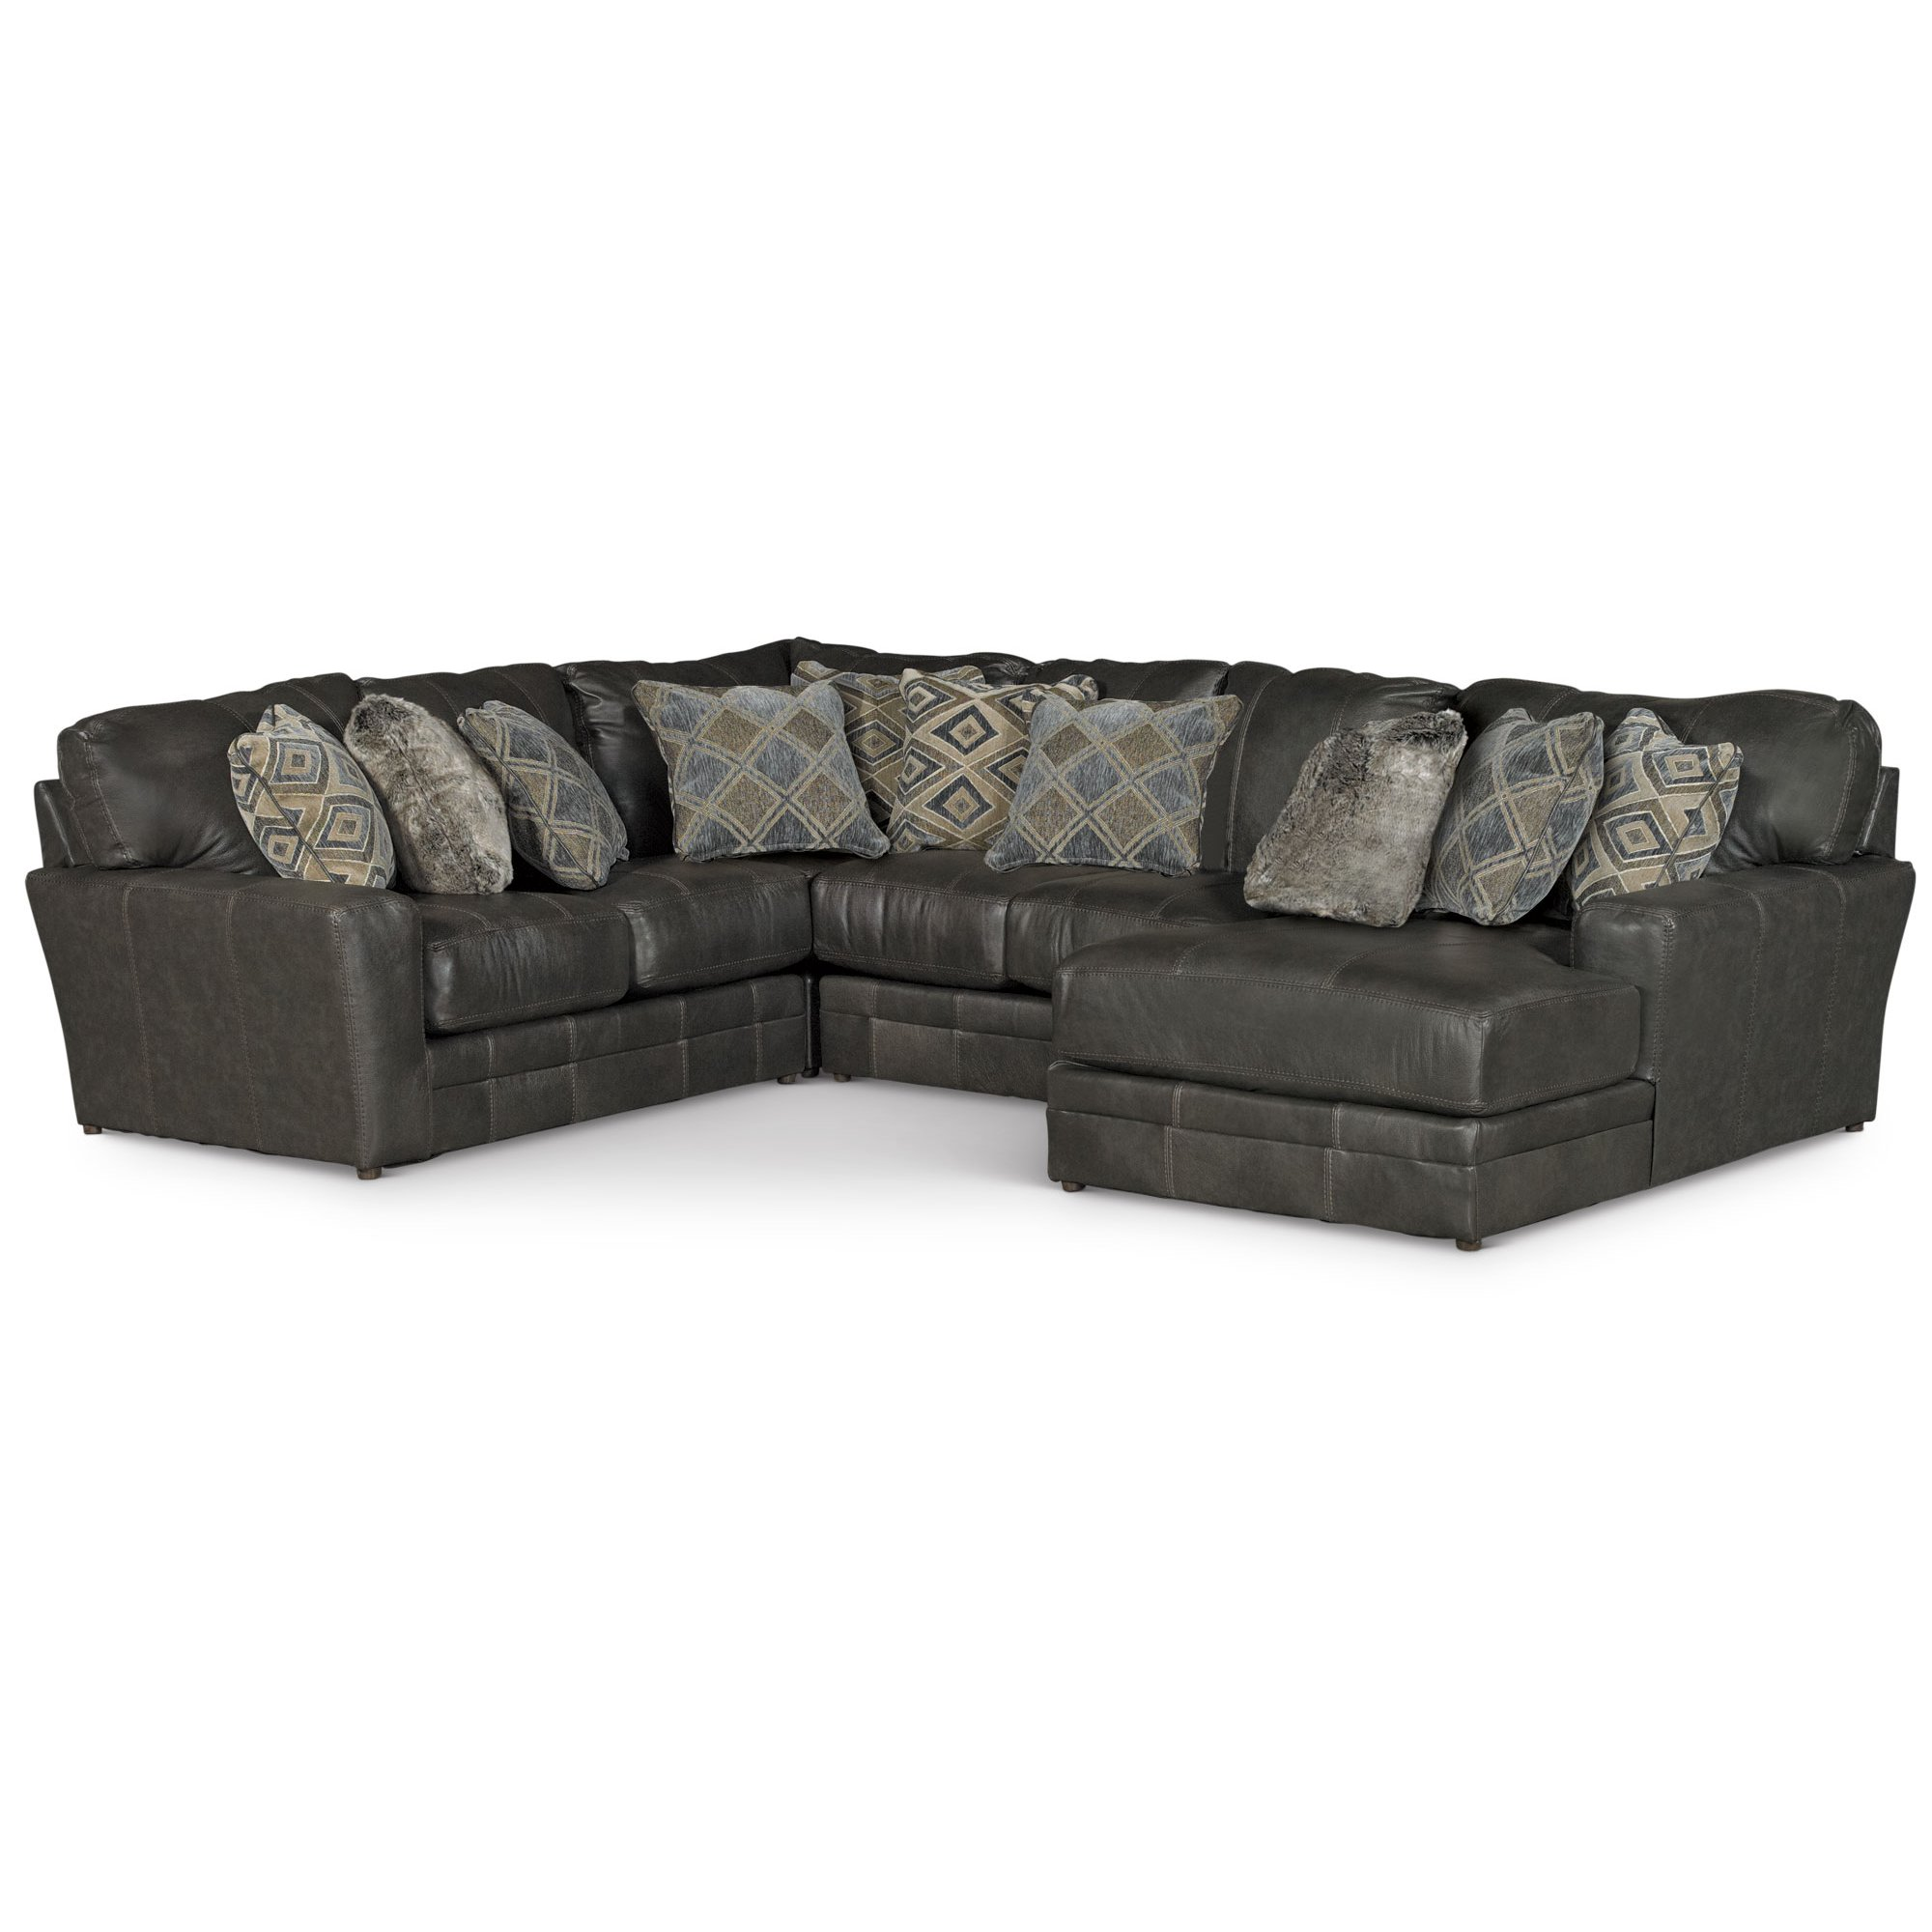 collections chaise item lawson three lsg with sofas wayside furniture sofa jackson console and sectional couch seat